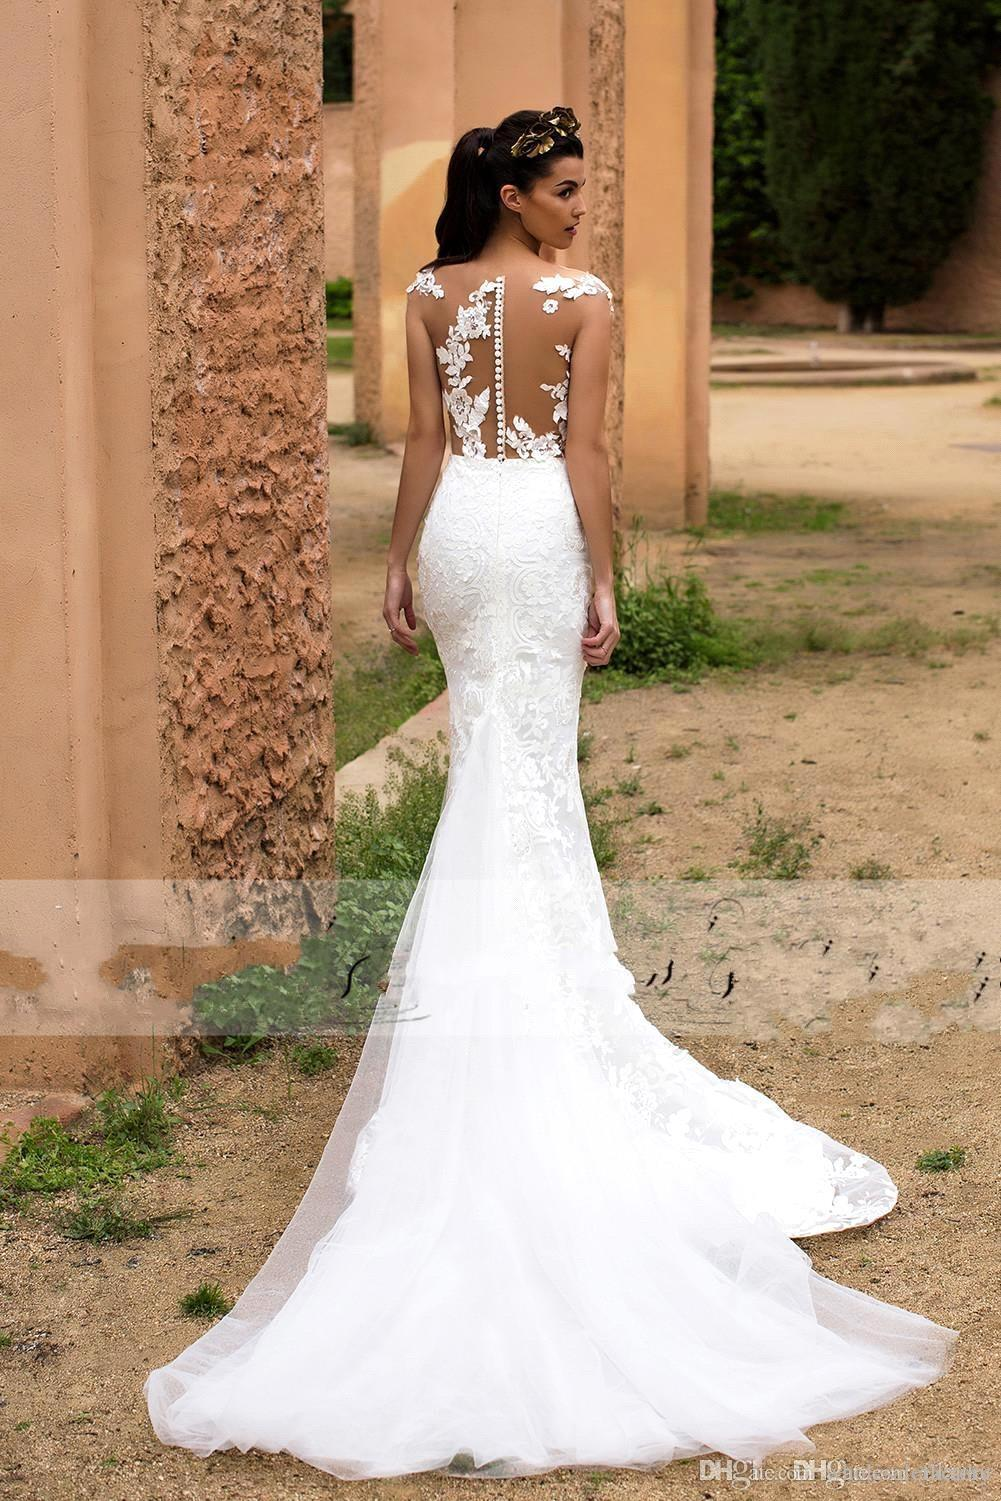 2018 Lace Mermaid Wedding Dresses Illusion Cap Sweep Tulle Lace Applique Over Skirt Formal